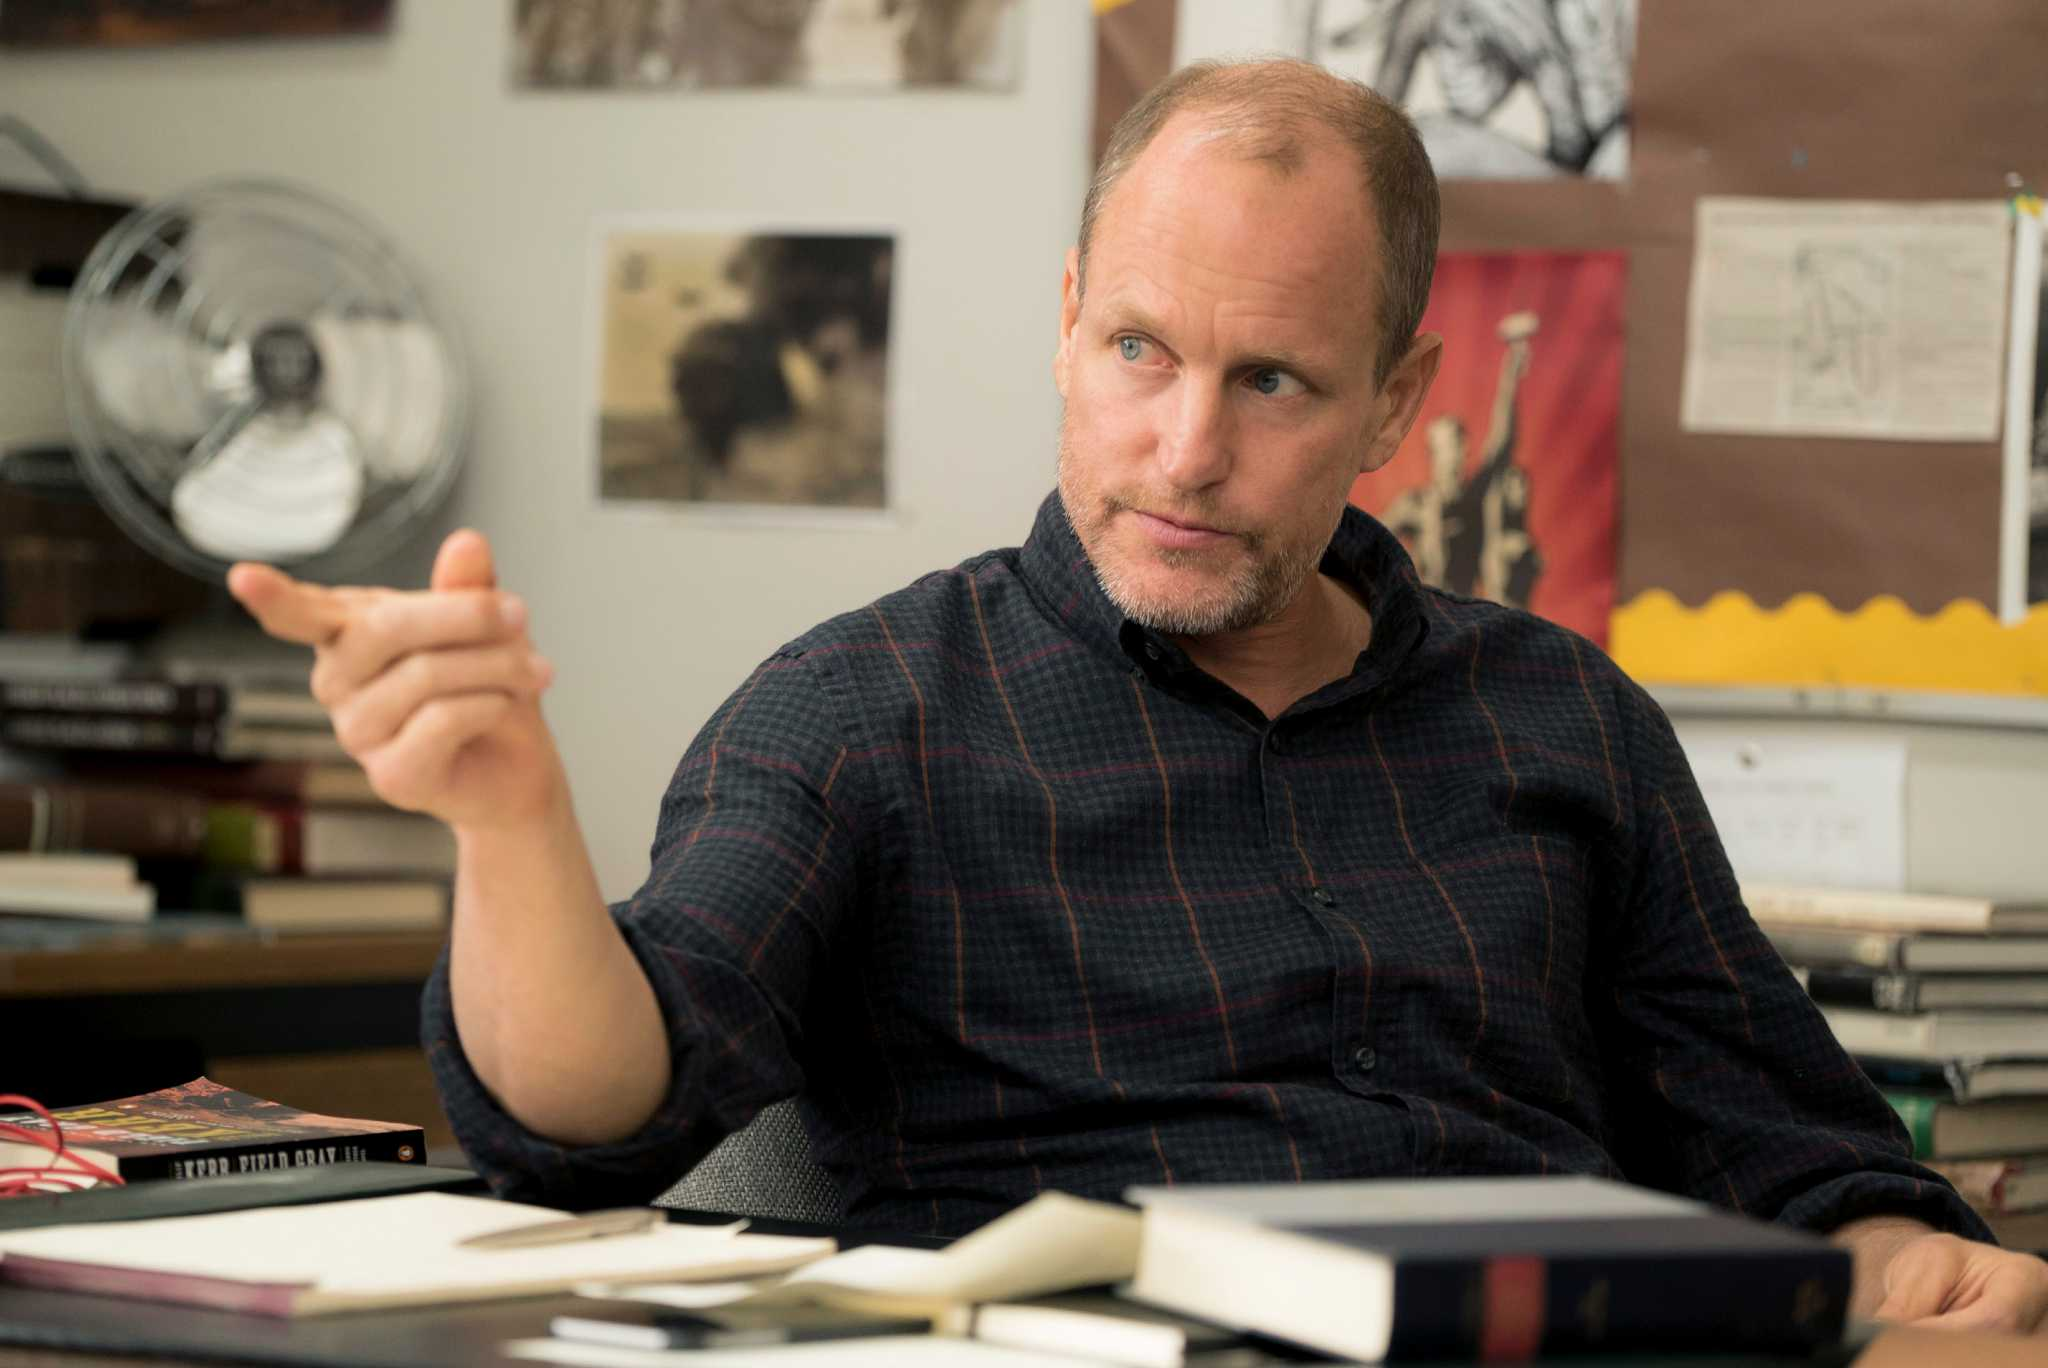 Woody Harrelson HBO series starts filming in Albany